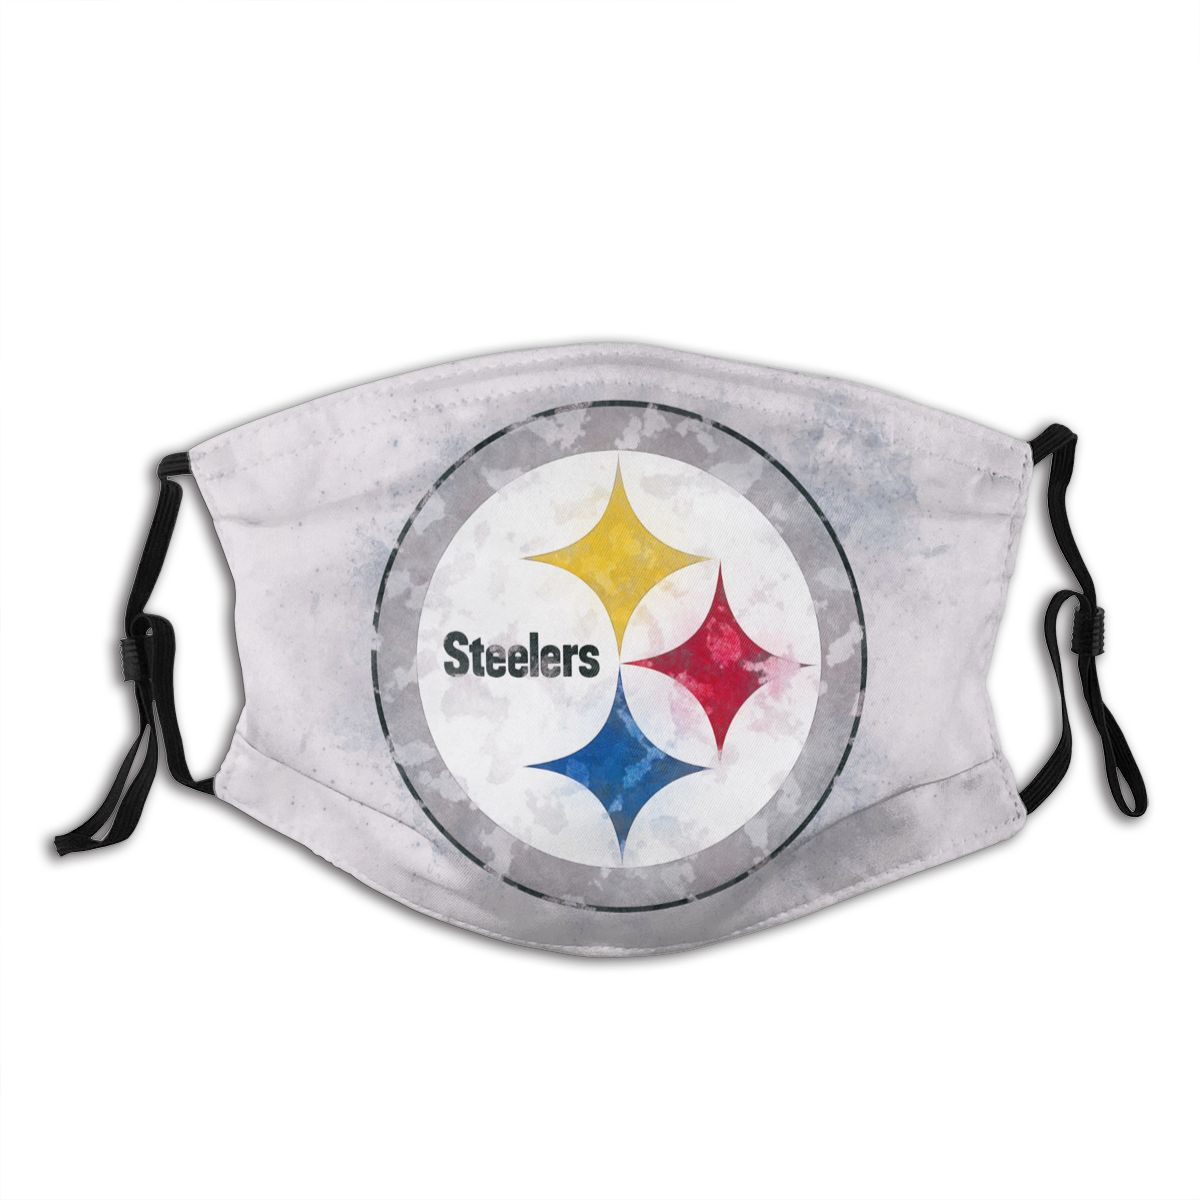 Steelers Logo Adult Cloth Face Covering With Filter